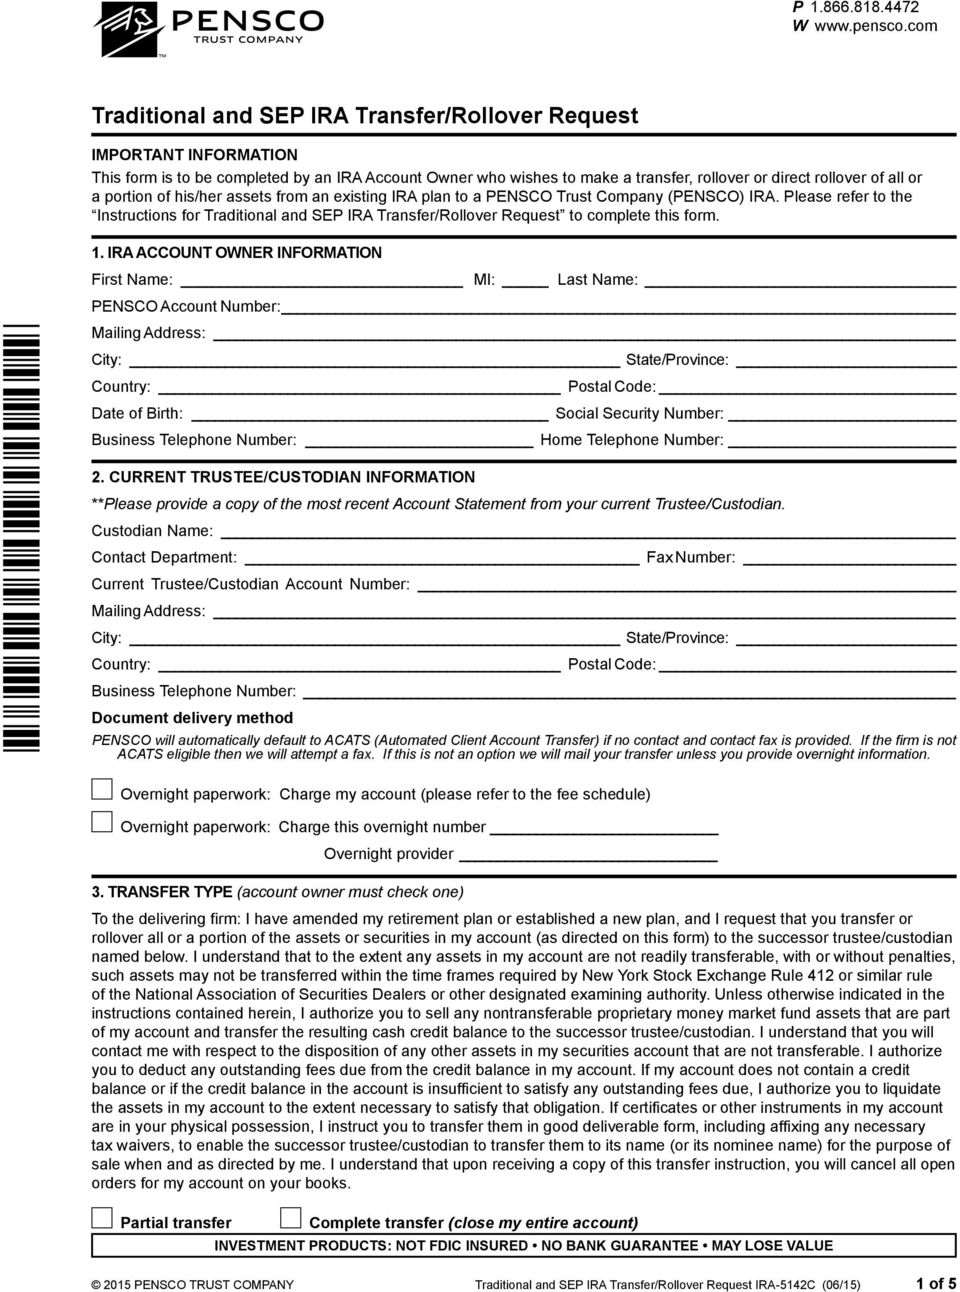 Pensco Ira Distribution Request Form